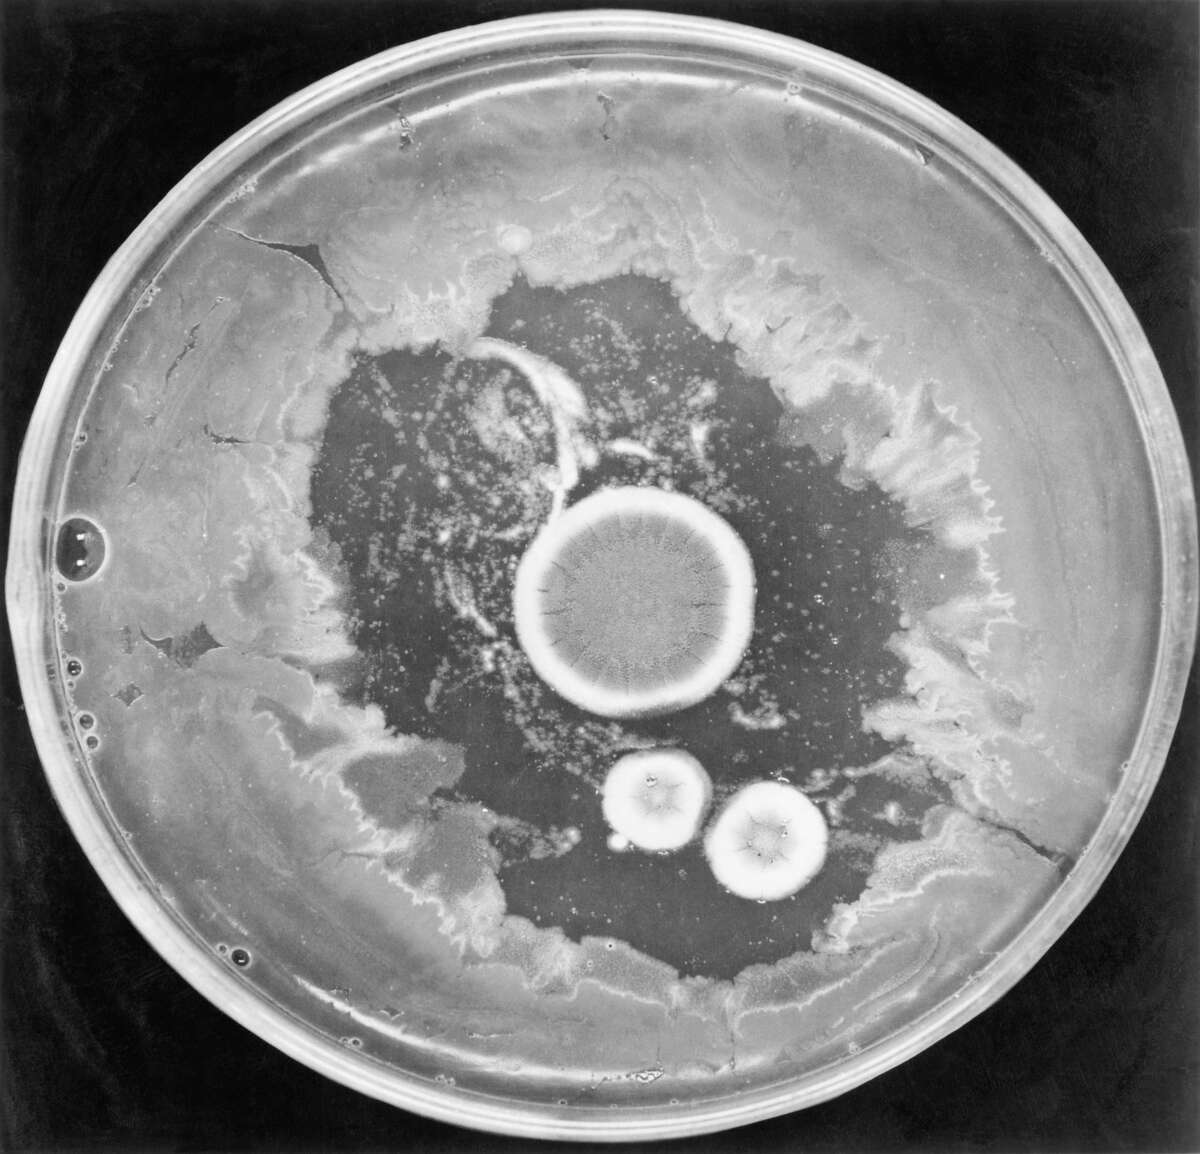 Colonies of Penicillium notatus, showing surrounding zone of bacterial inhibition. This is the phenomenon noted by Alexander Fleming in 1929, which led to his discovery of Penicillin. (Getty Images)